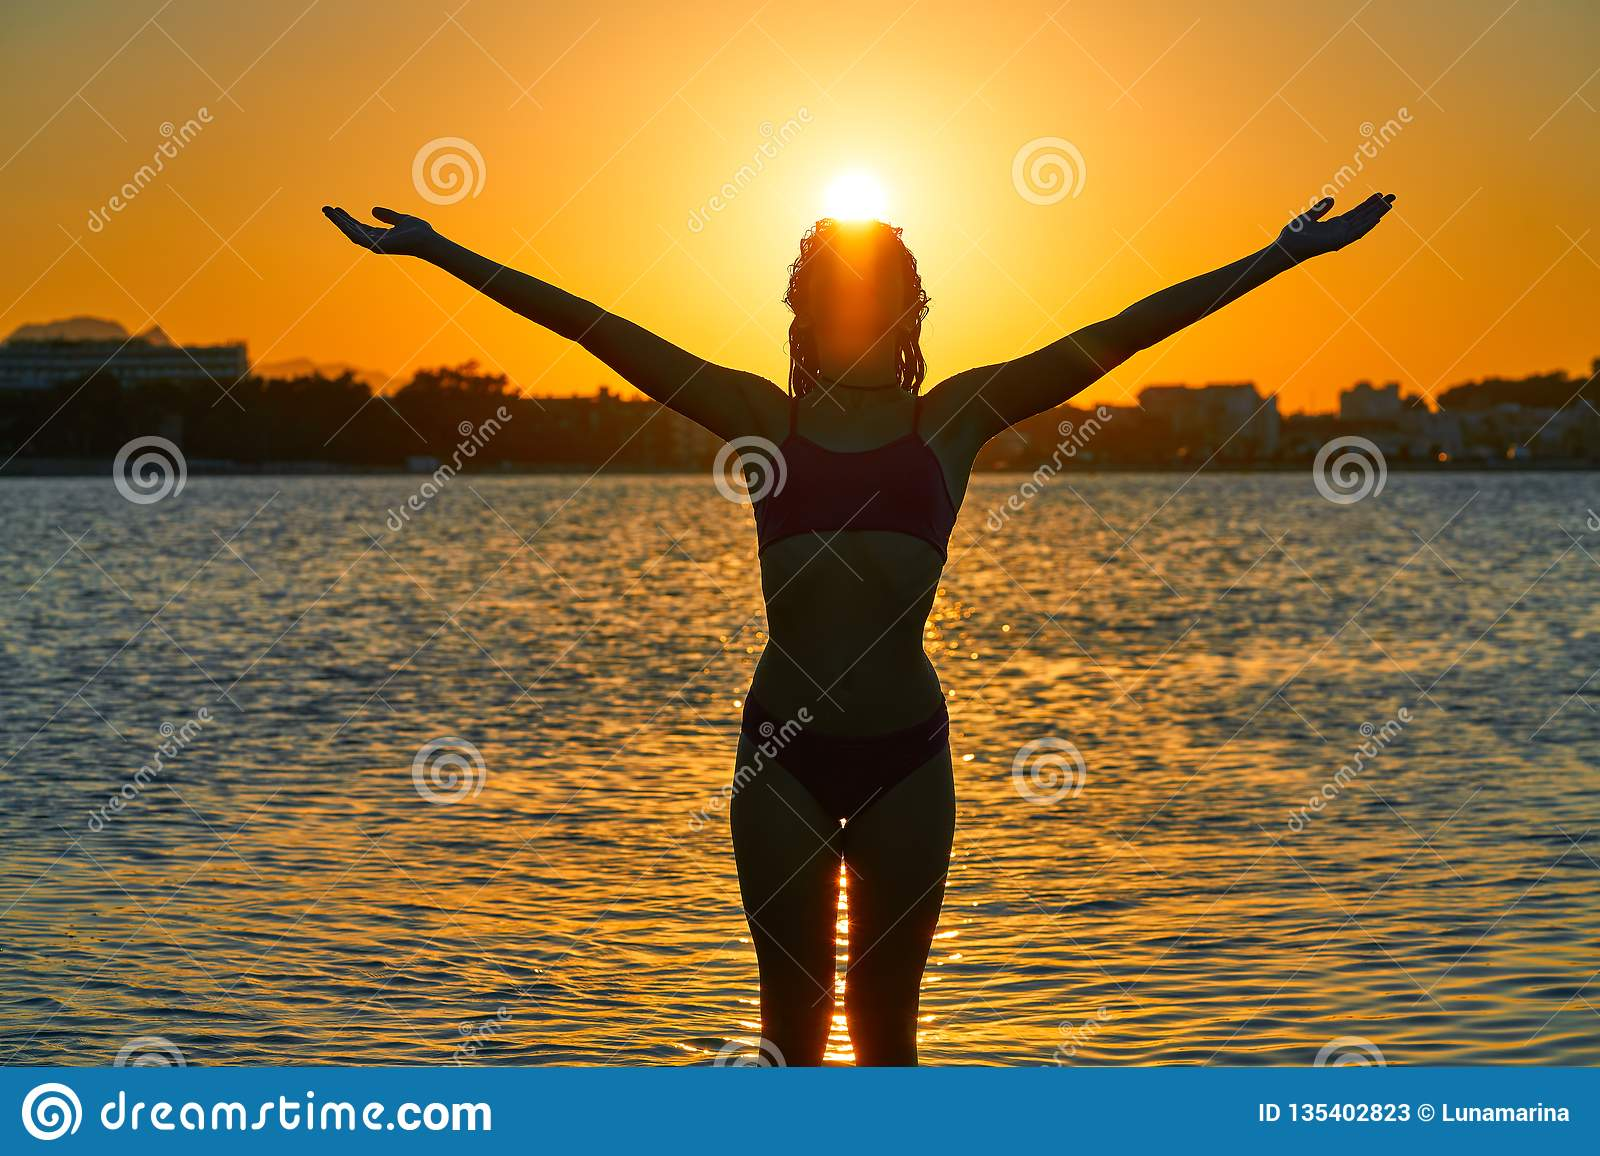 Girl silhouette at beach sunset open arms